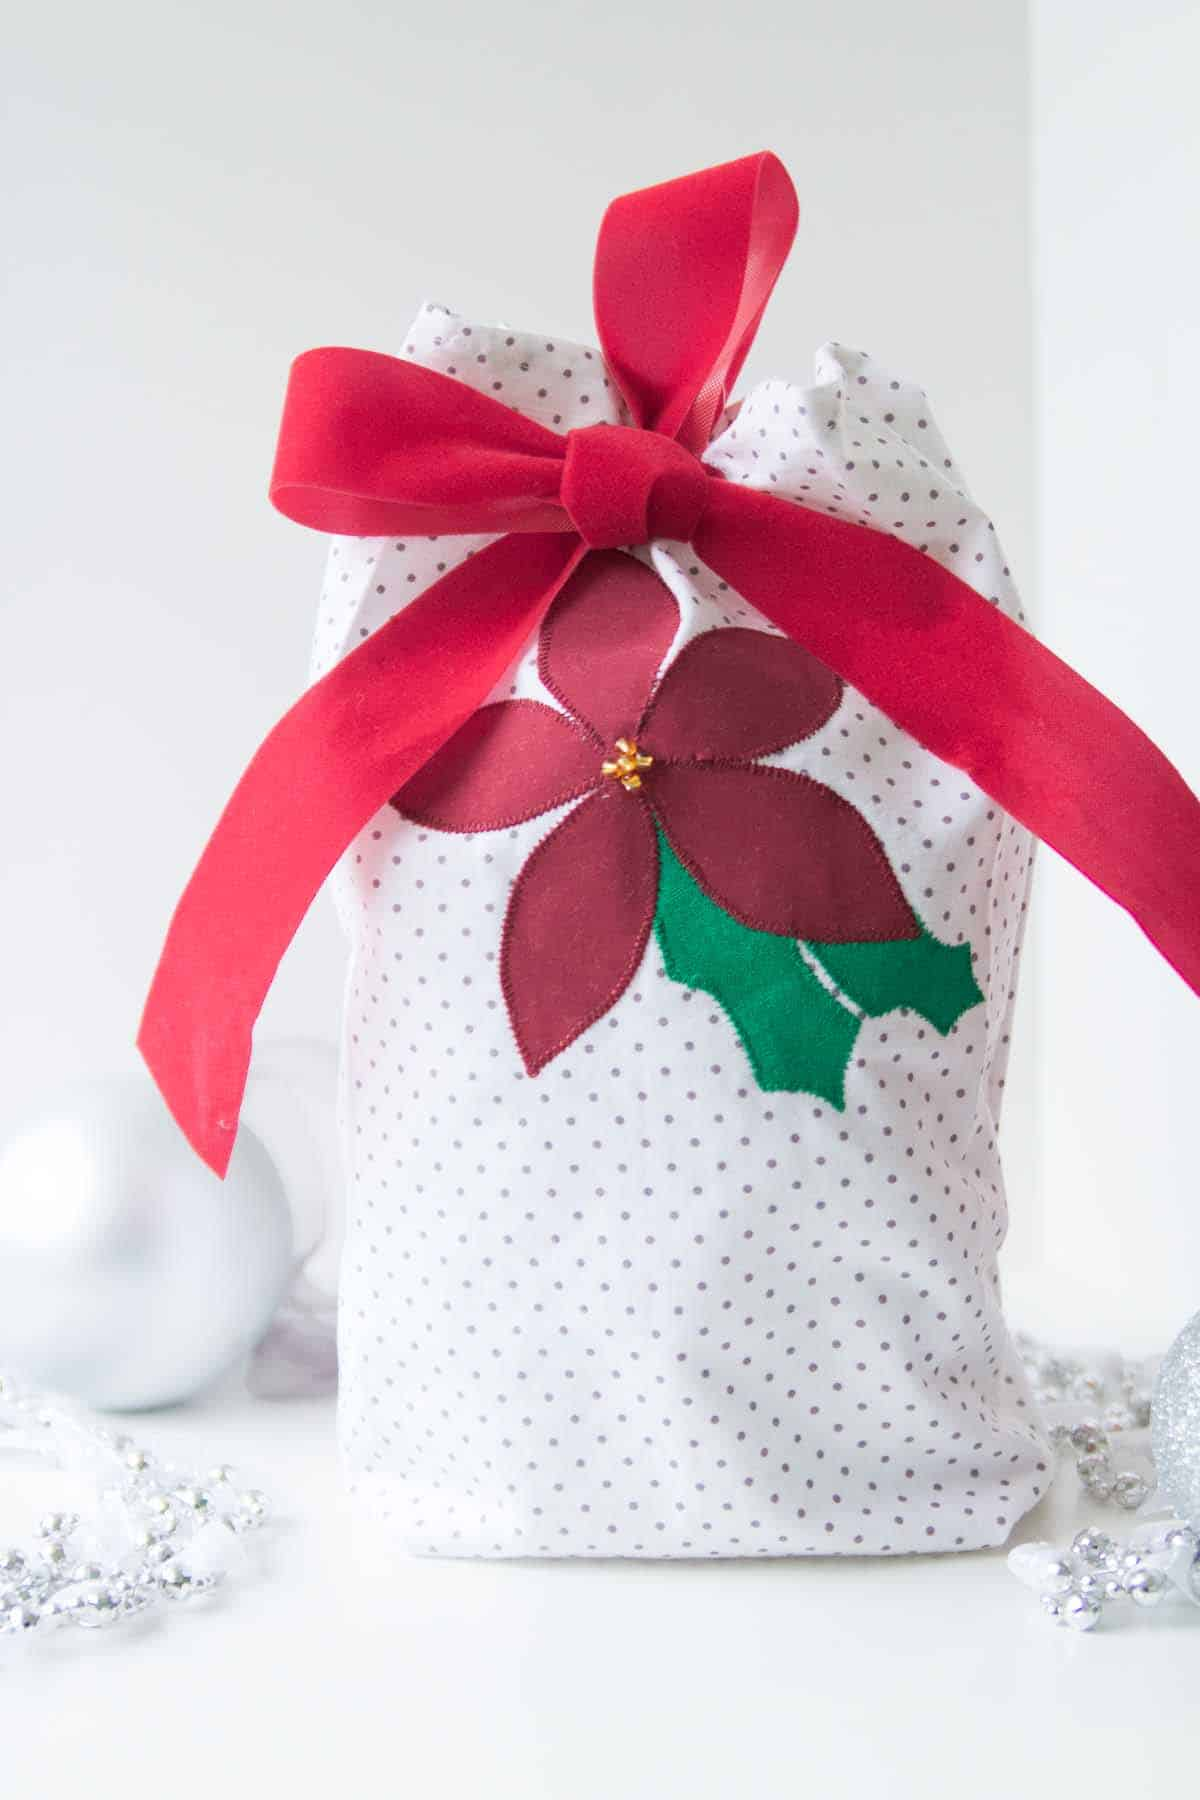 Poinsettia appliquéd gift bag tutorial - sew reusable gift bags and use up your scraps! Sewing tutorial by Melly Sews